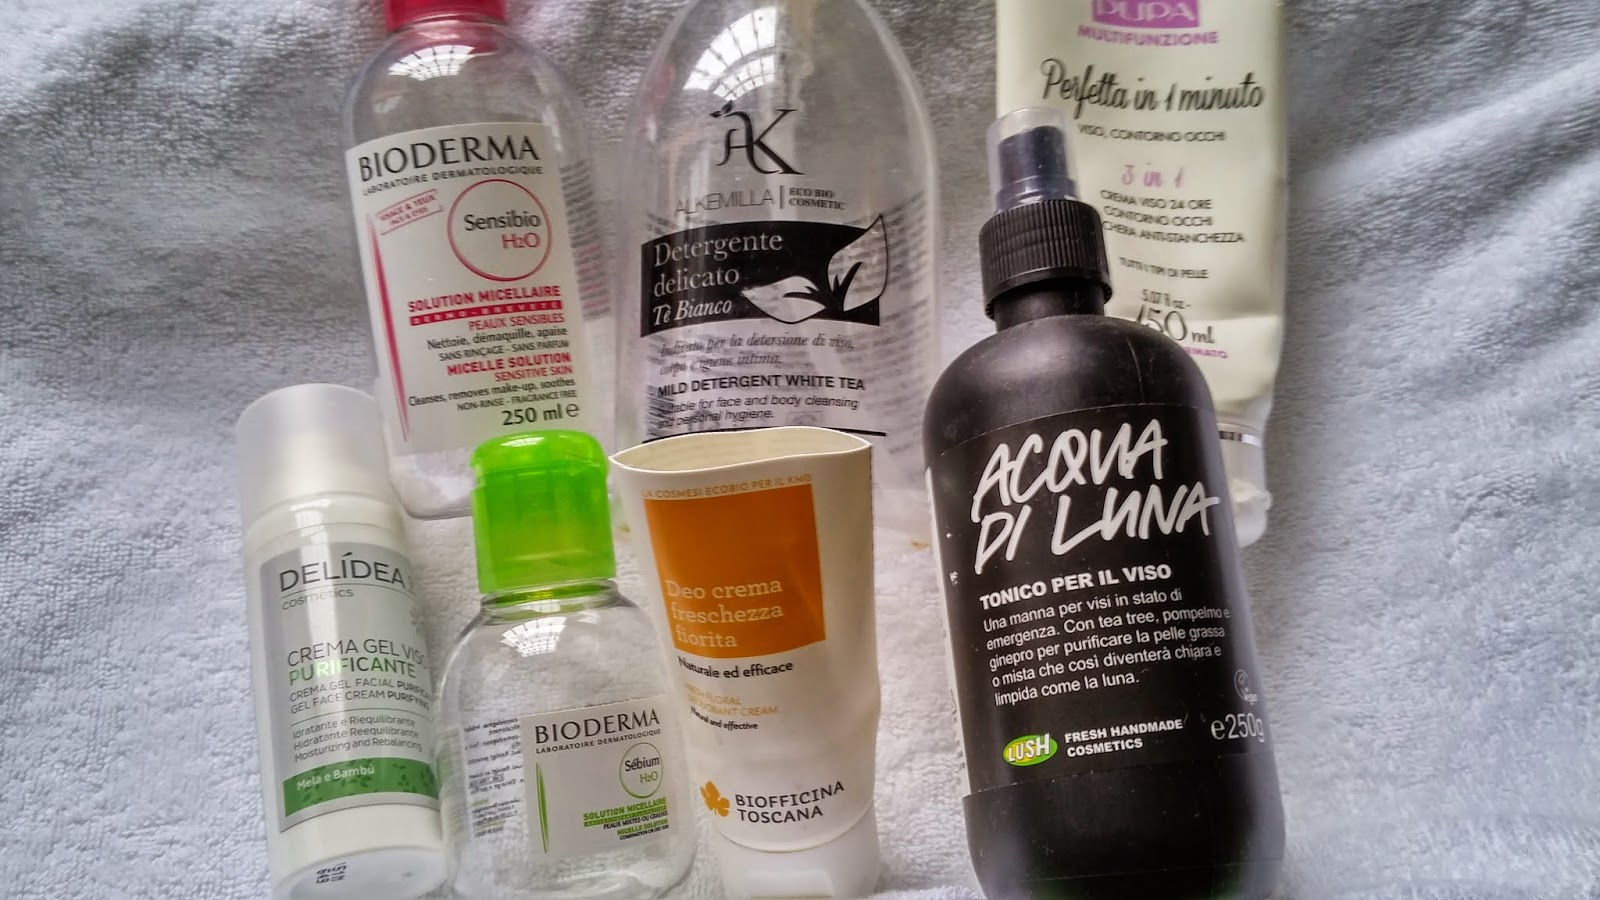 Ended products - lush, biofficina toscana, delidea, bioderma, pupa, alkemilla